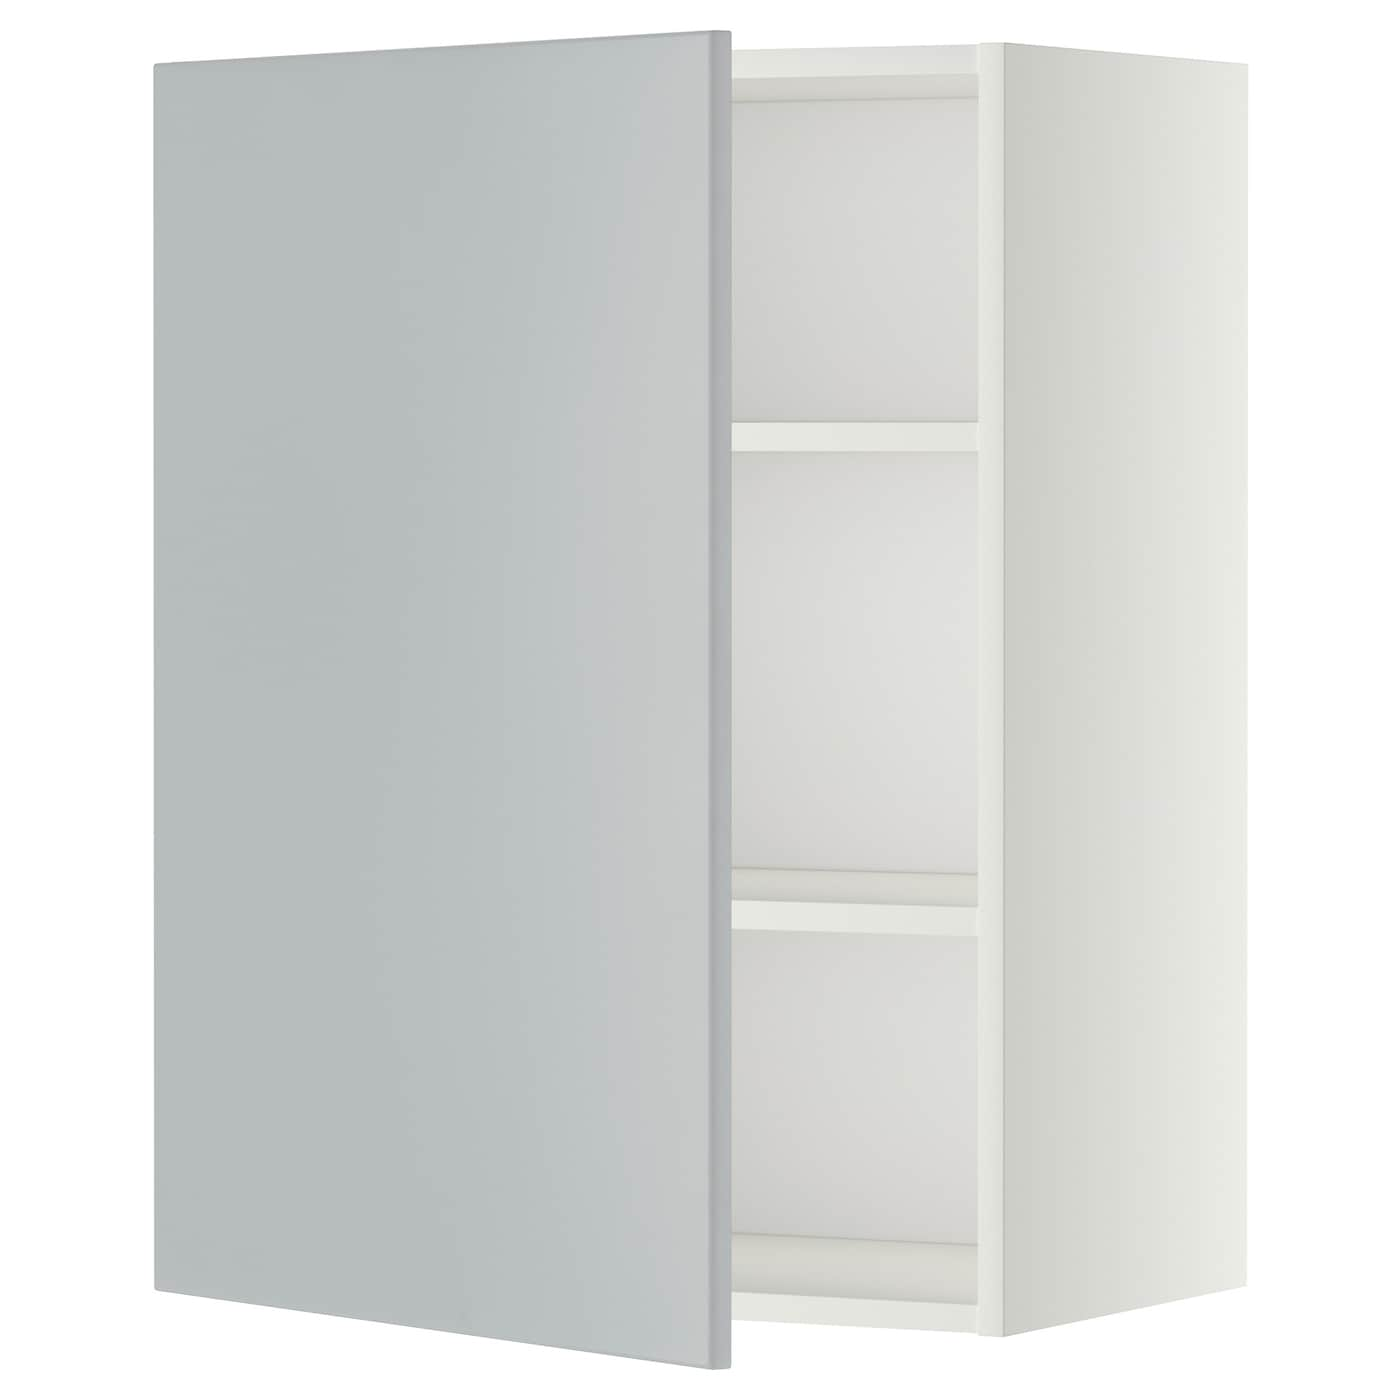 Ikea Kitchen Wall Storage: METOD Wall Cabinet With Shelves White/veddinge Grey 60 X